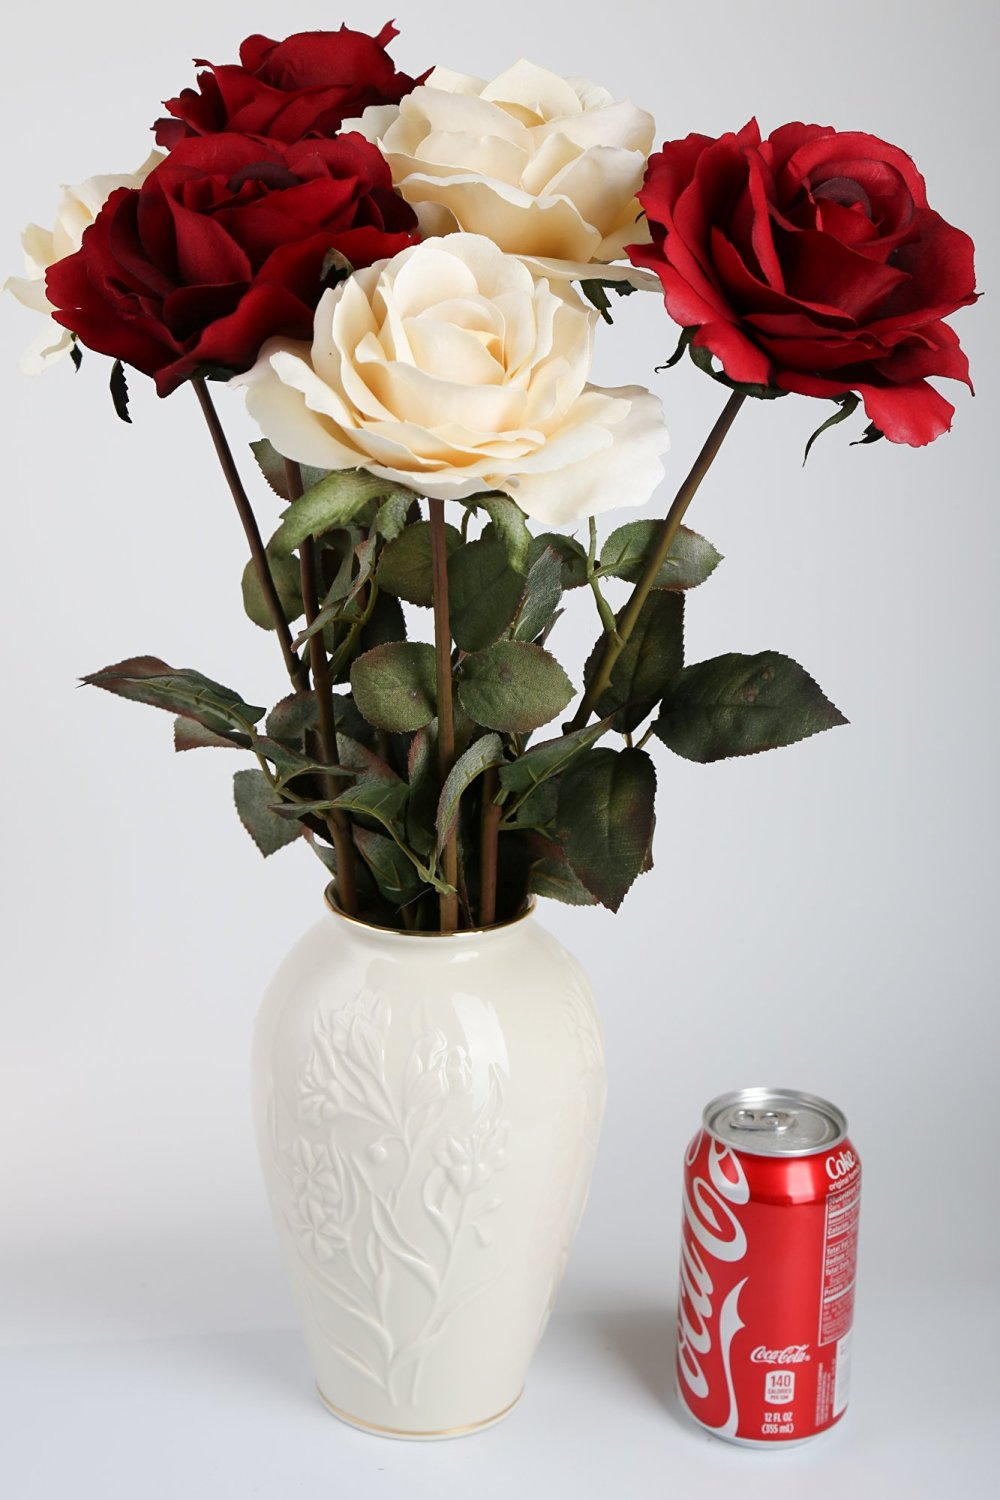 Cheap large cream vase find large cream vase deals on line at get quotations silkenbloom artificial cream and red silk queen roses in lenox cream vase reviewsmspy